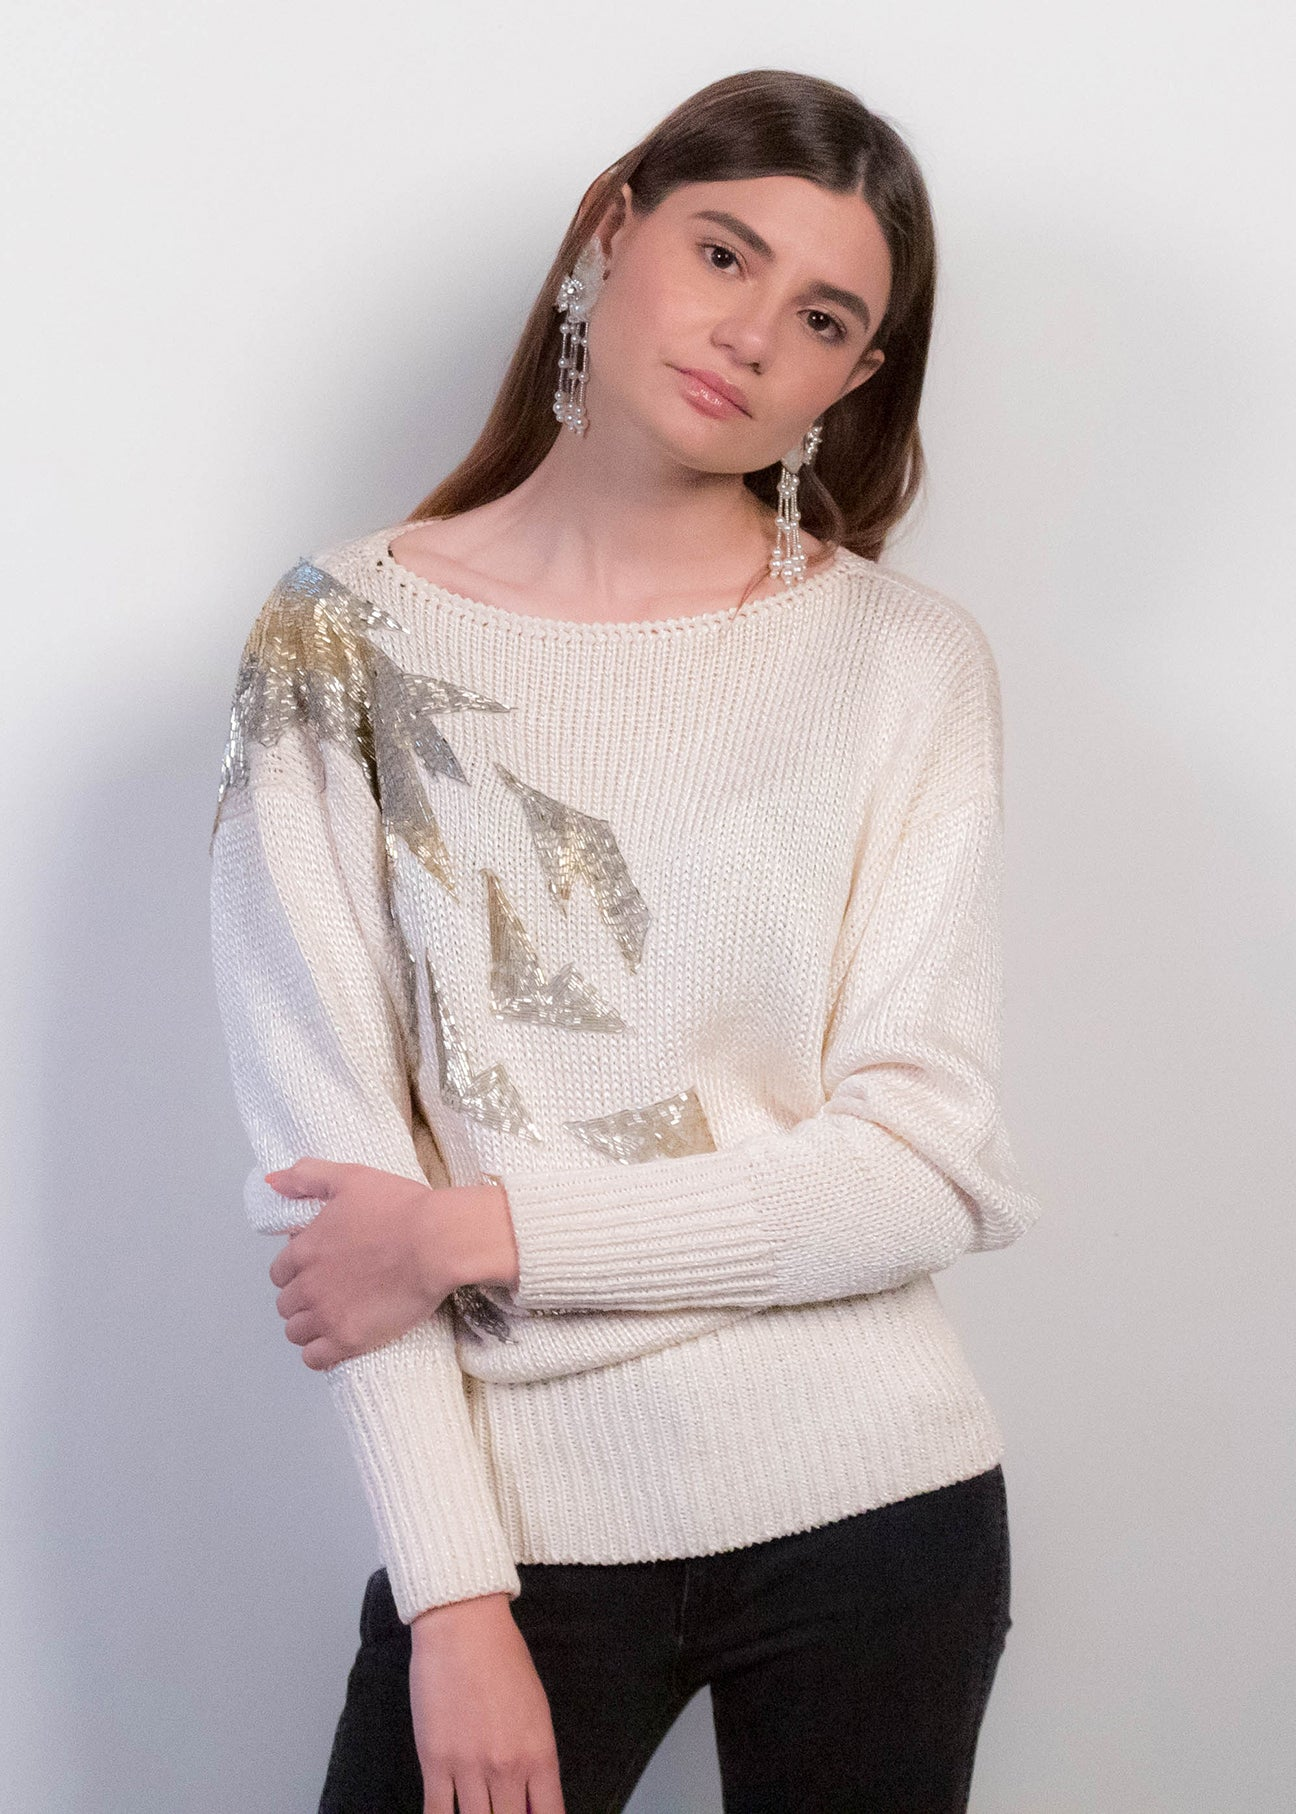 80s Glass Beaded Sweater